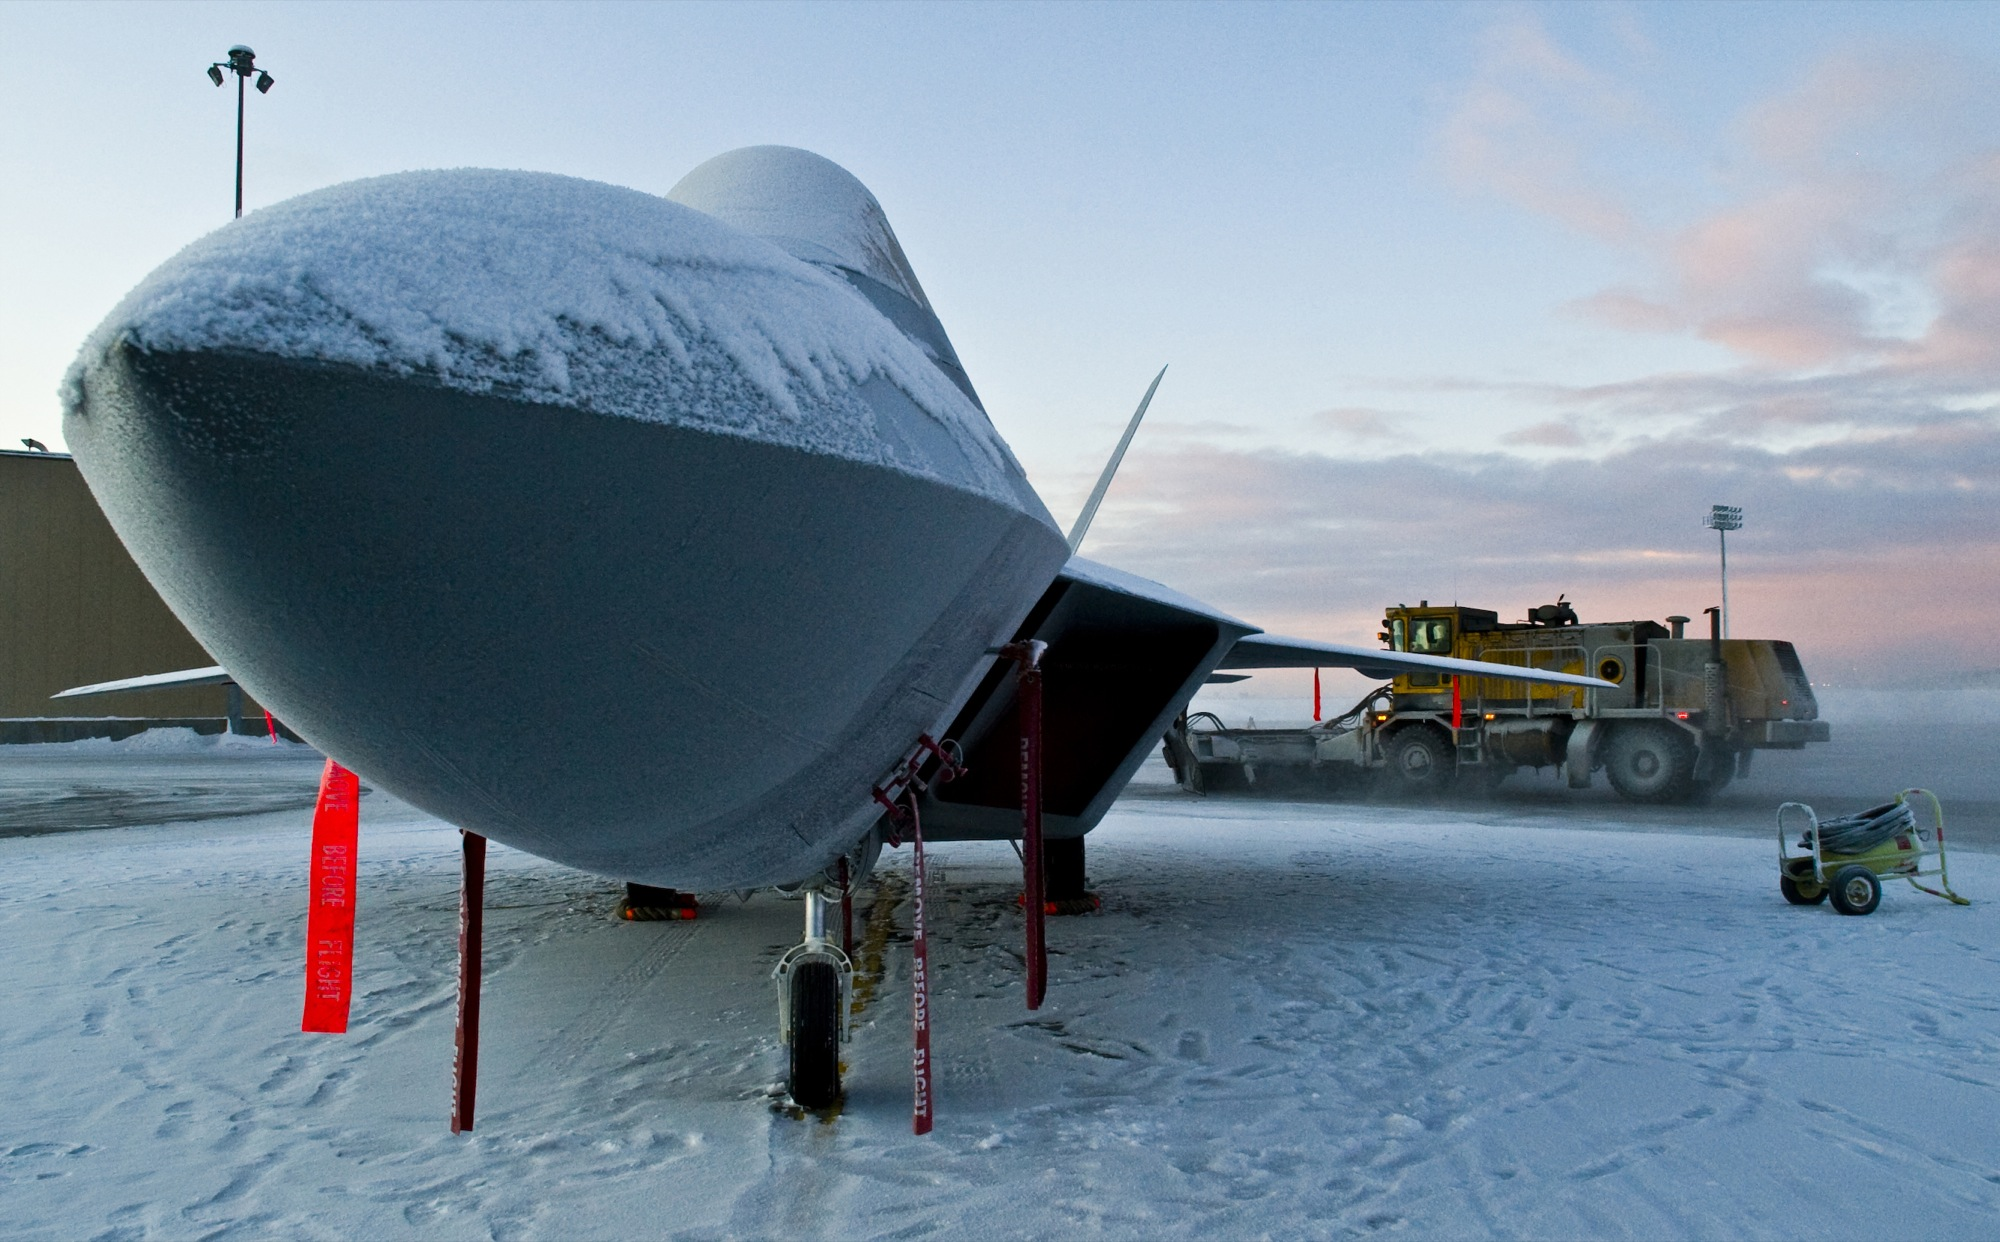 ELMENDORF AIR FORCE BASE, Alaska - A snow covered F-22A Raptor rests in a circle of snow as 3rd Civil Engineer Squadron Snow Removal members clear the runways Jan. 13, 2008. Elmendorf is the second operational base and the first in the Pacific Air Forces to have a permanent Raptor mission. (U.S. Air Force photo/Senior Airman Garrett Hothan)